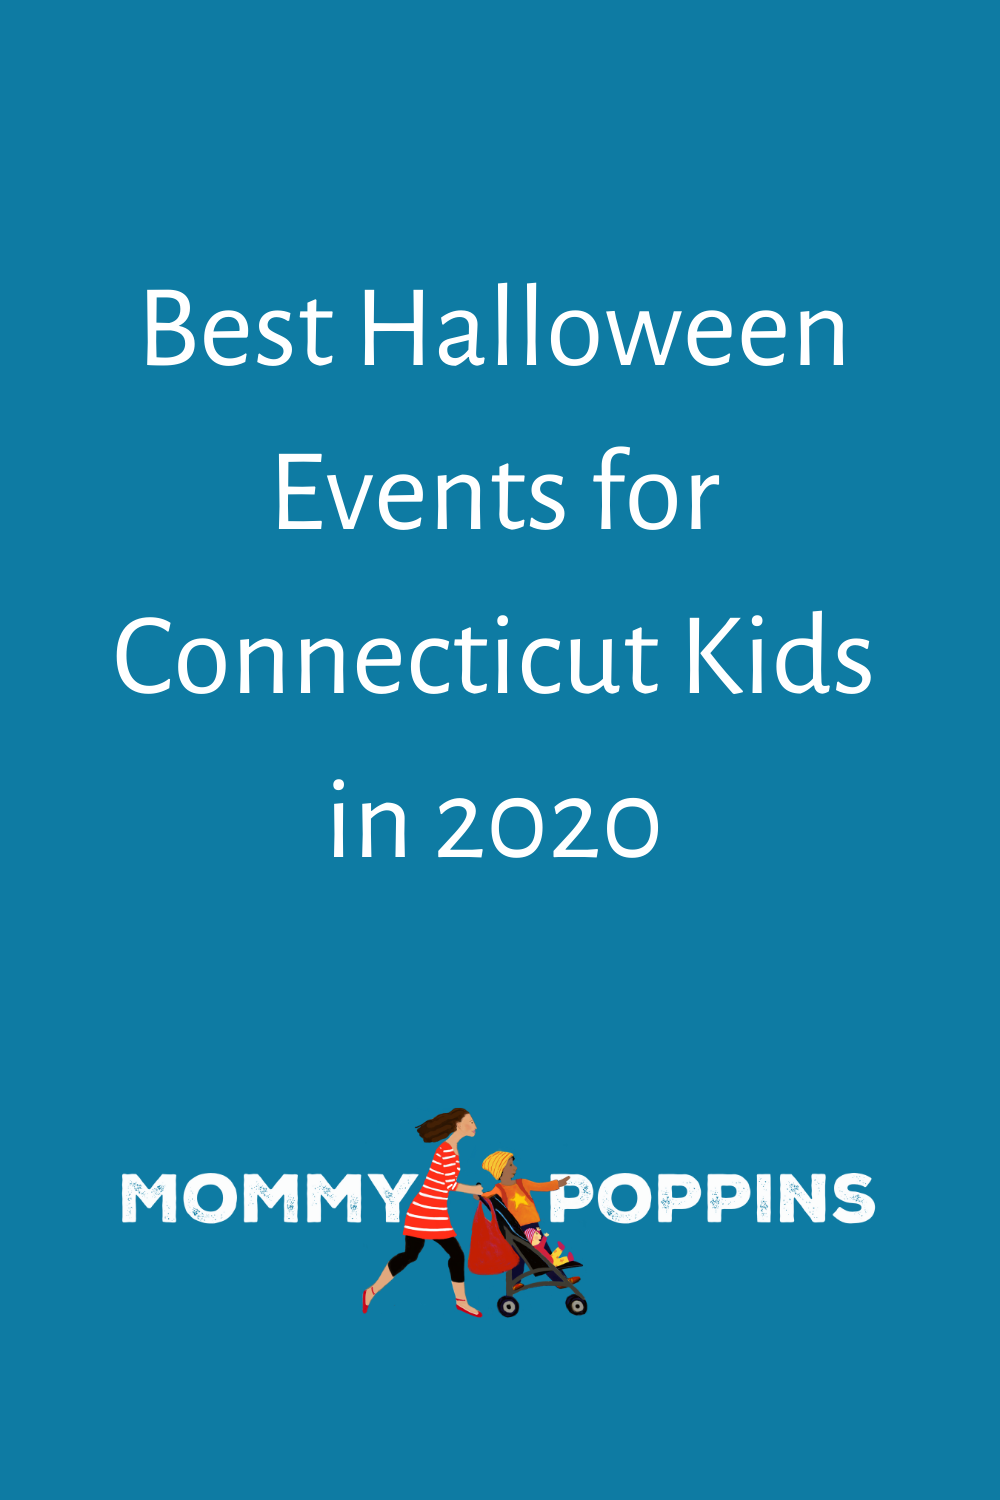 Best Halloween Events for Connecticut Kids in 2020 | Mommy Poppins